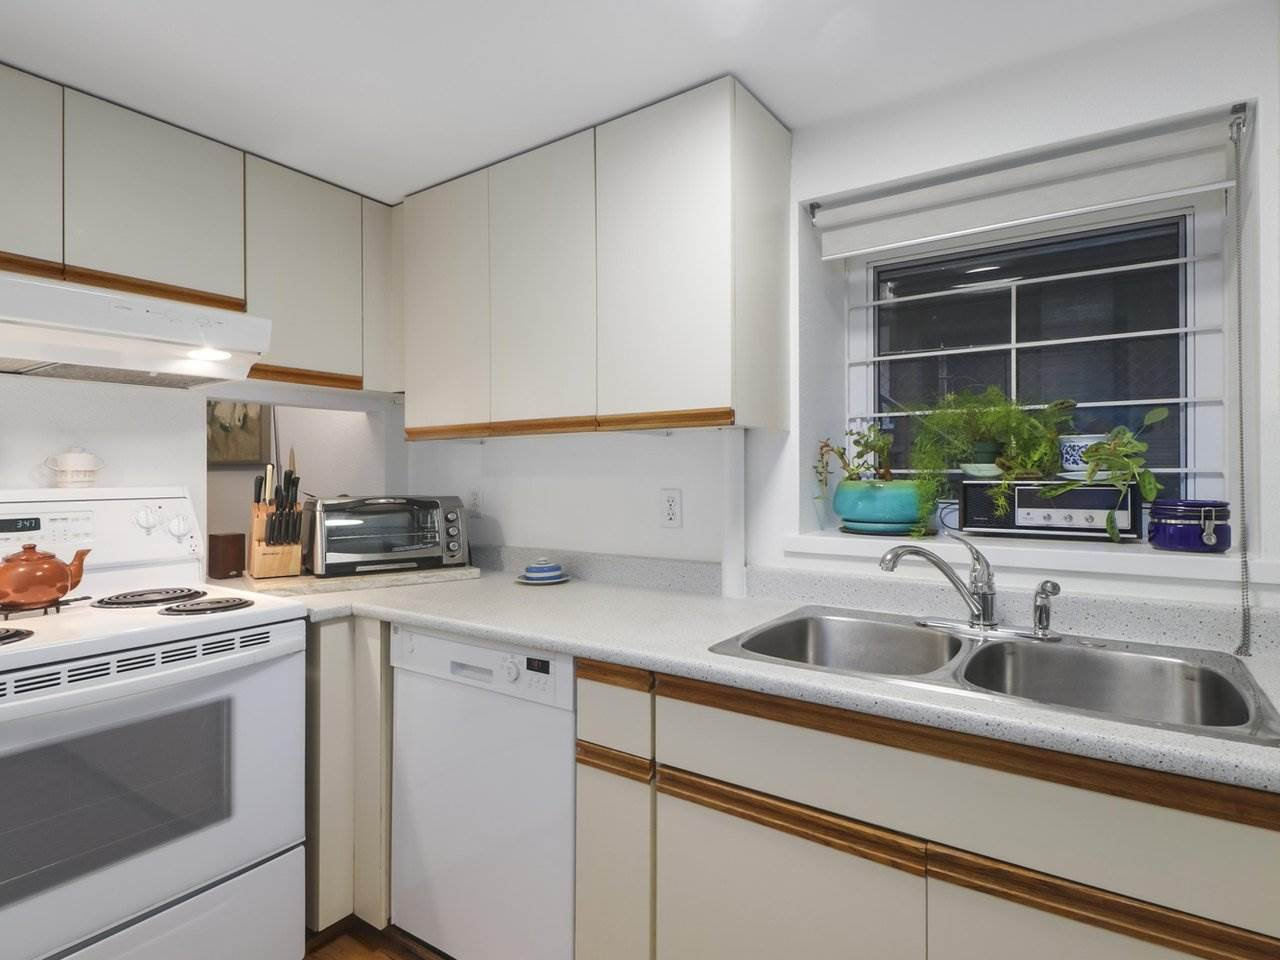 """Photo 5: Photos: 103 1943 E 1ST Avenue in Vancouver: Grandview Woodland Townhouse for sale in """"THE VAULT"""" (Vancouver East)  : MLS®# R2465391"""